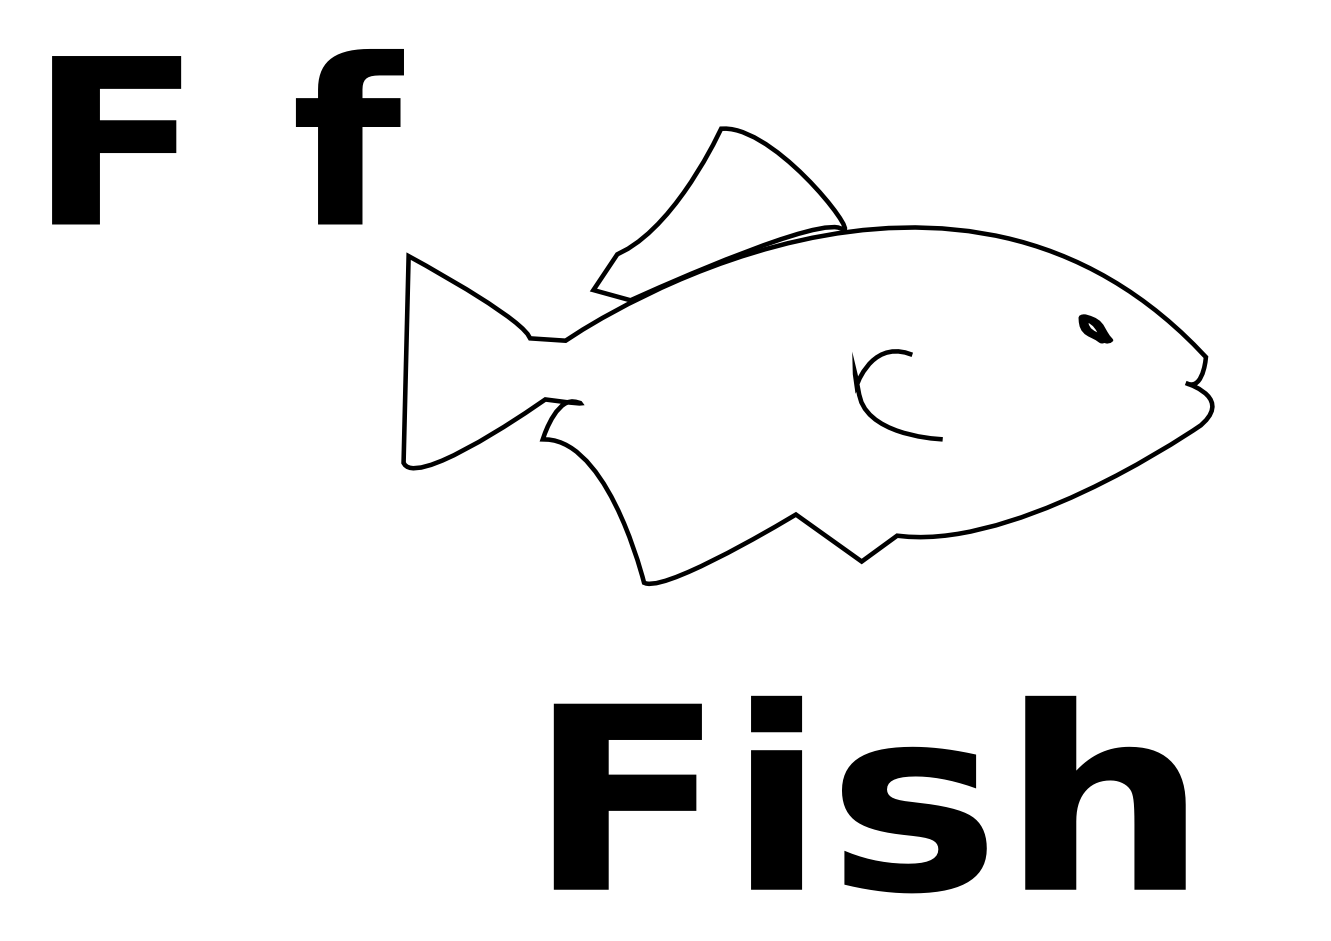 F For Fish Black White Line Art Coloring Book Colouring